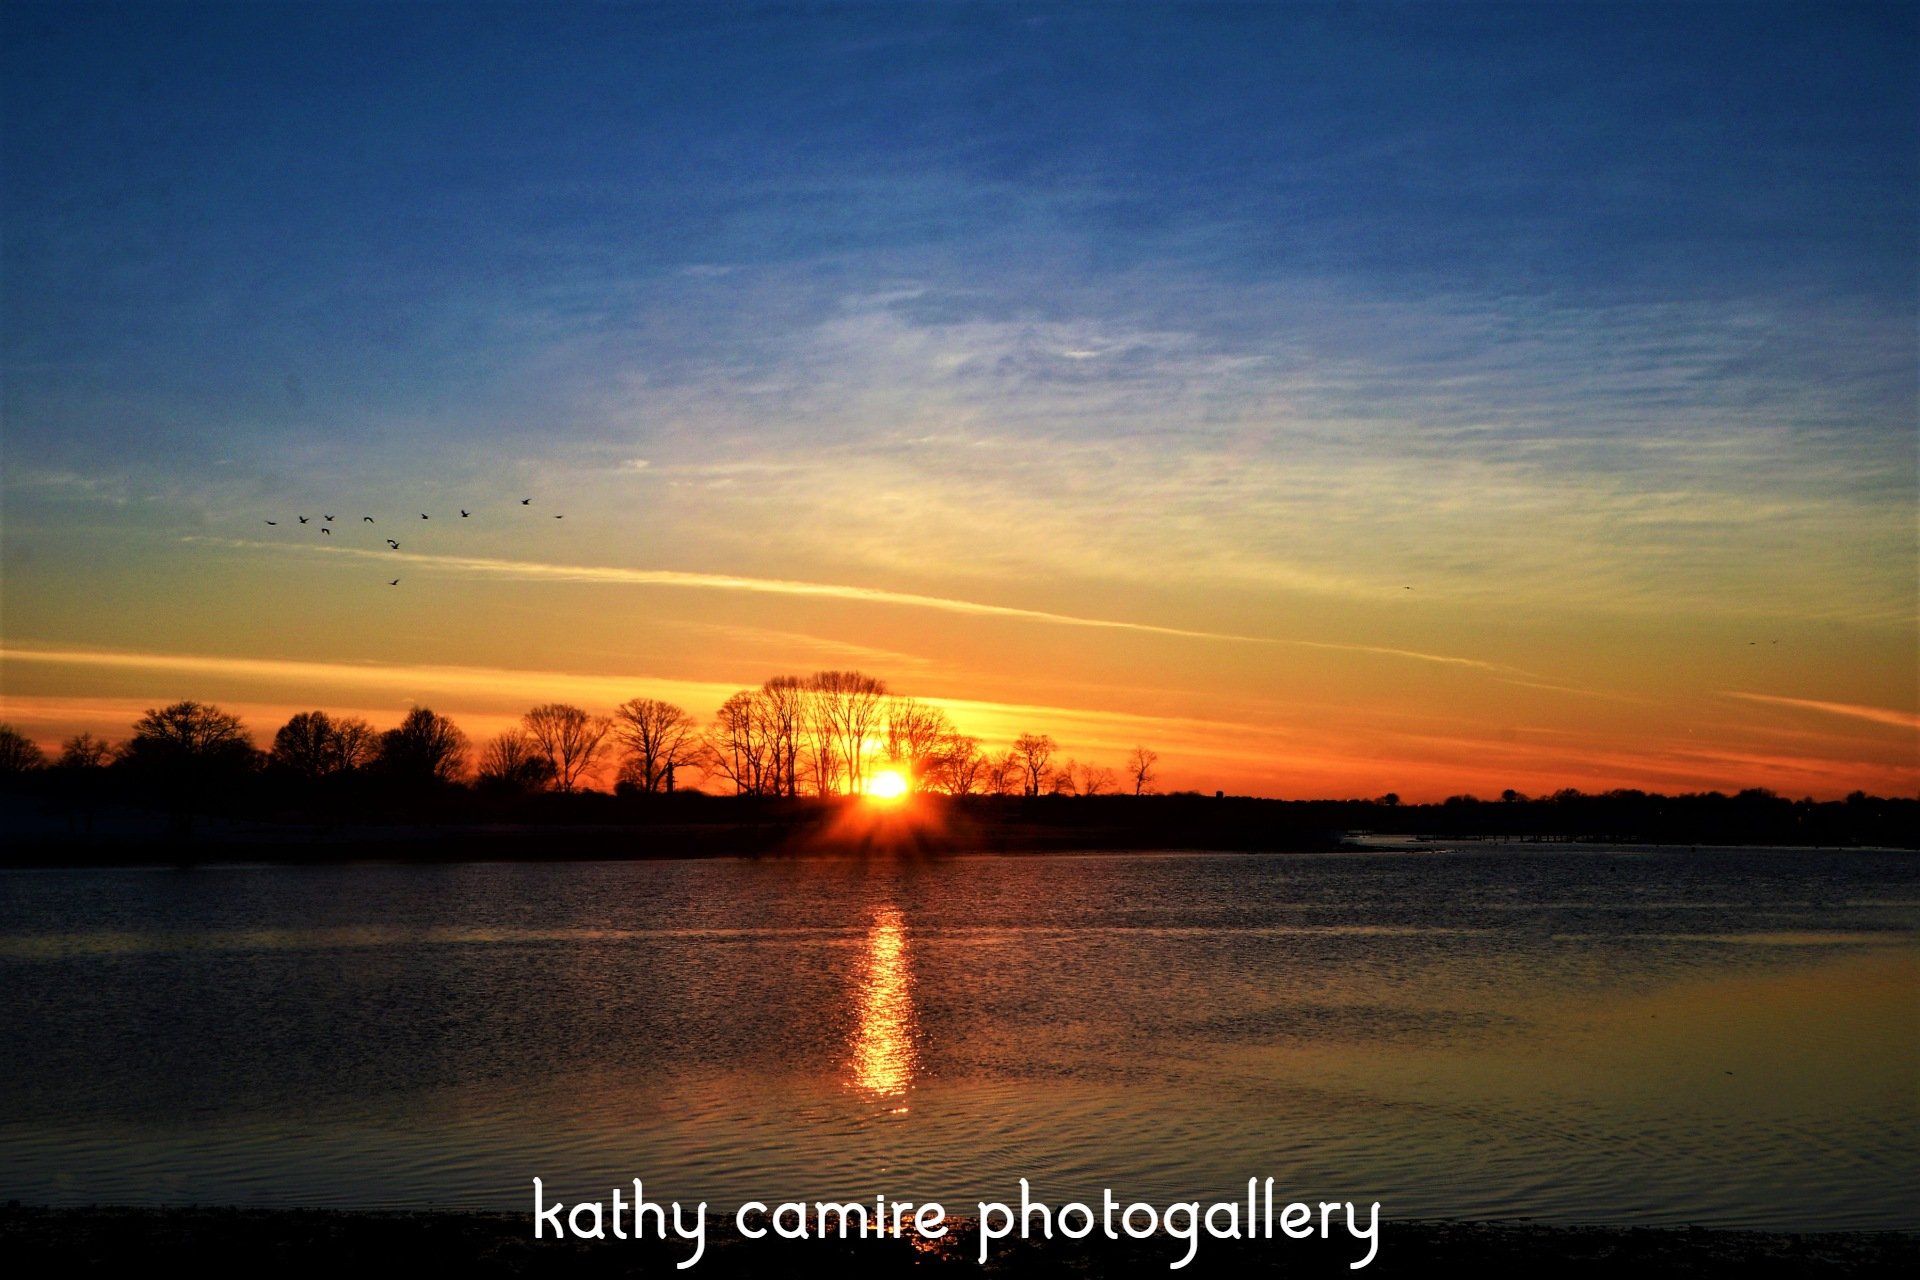 Evening view by kathycamirephotogallery